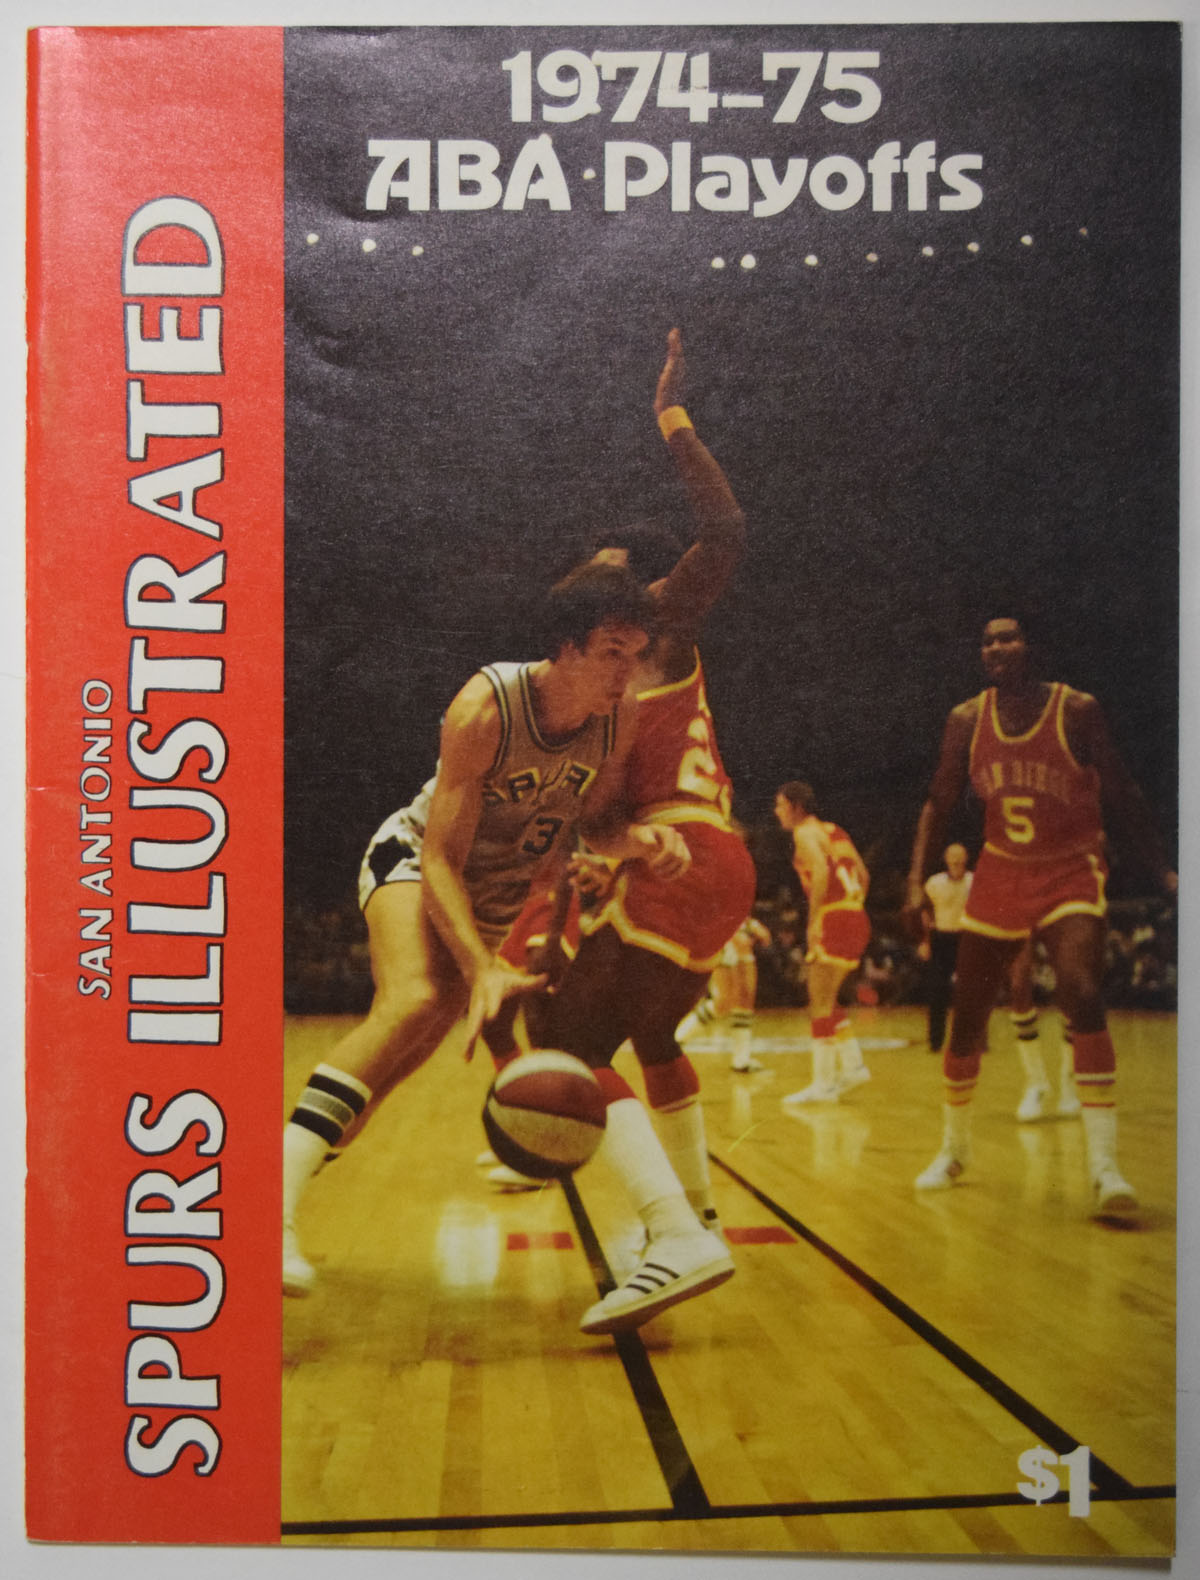 Lot #990 1974 Program  Spurs/Pacers ABA Playoff Program Cond: Ex-Mt